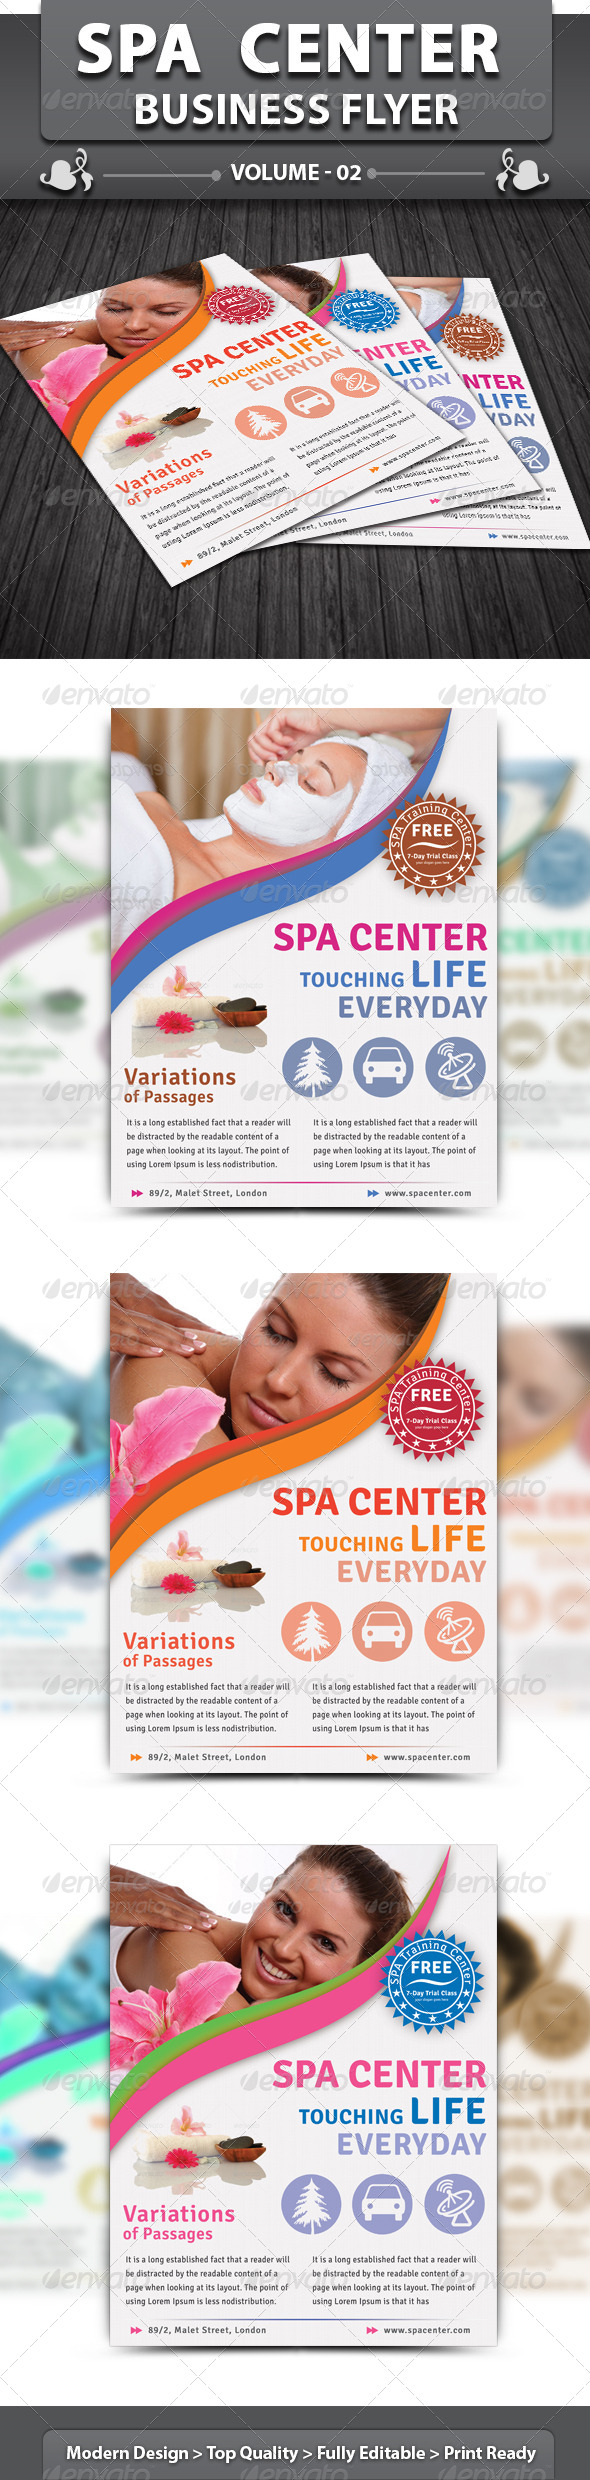 GraphicRiver SPA Training Center Business Flyer v2 4892906